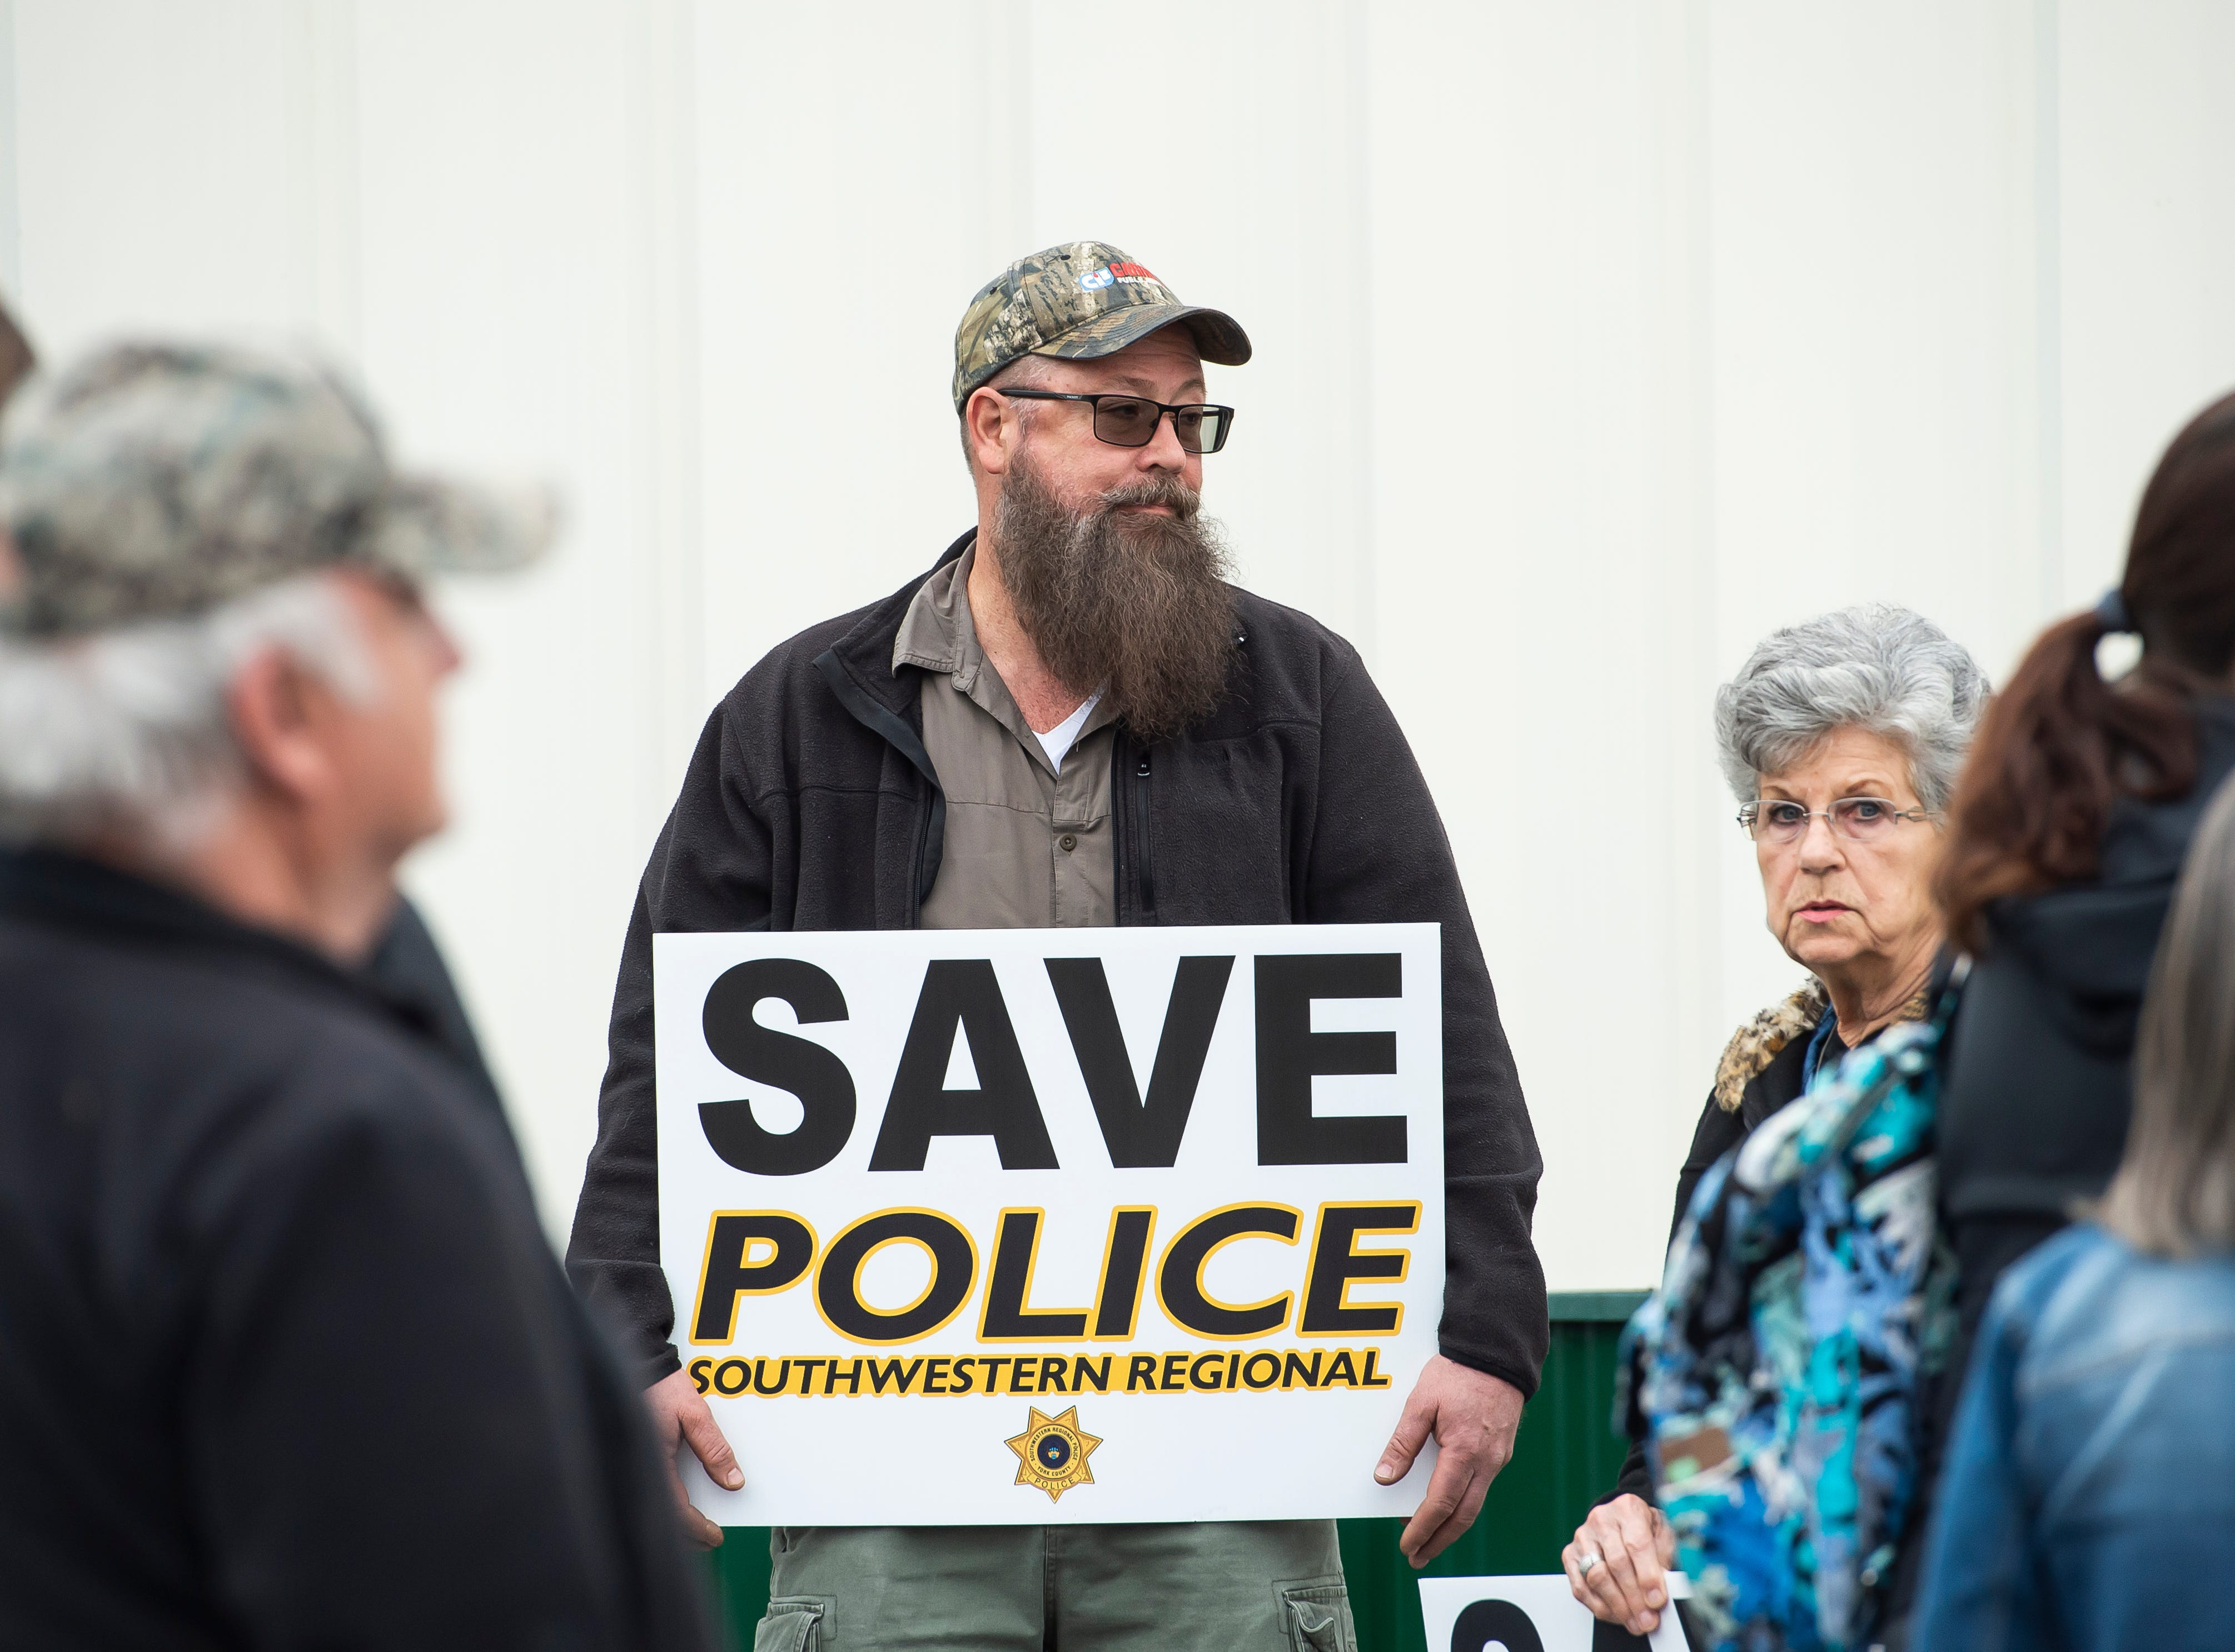 Brad Miller holds a sign showing his support for the Southwestern Regional Police Department before the start of a North Codorus Township meeting on Tuesday, April 16, 2019.